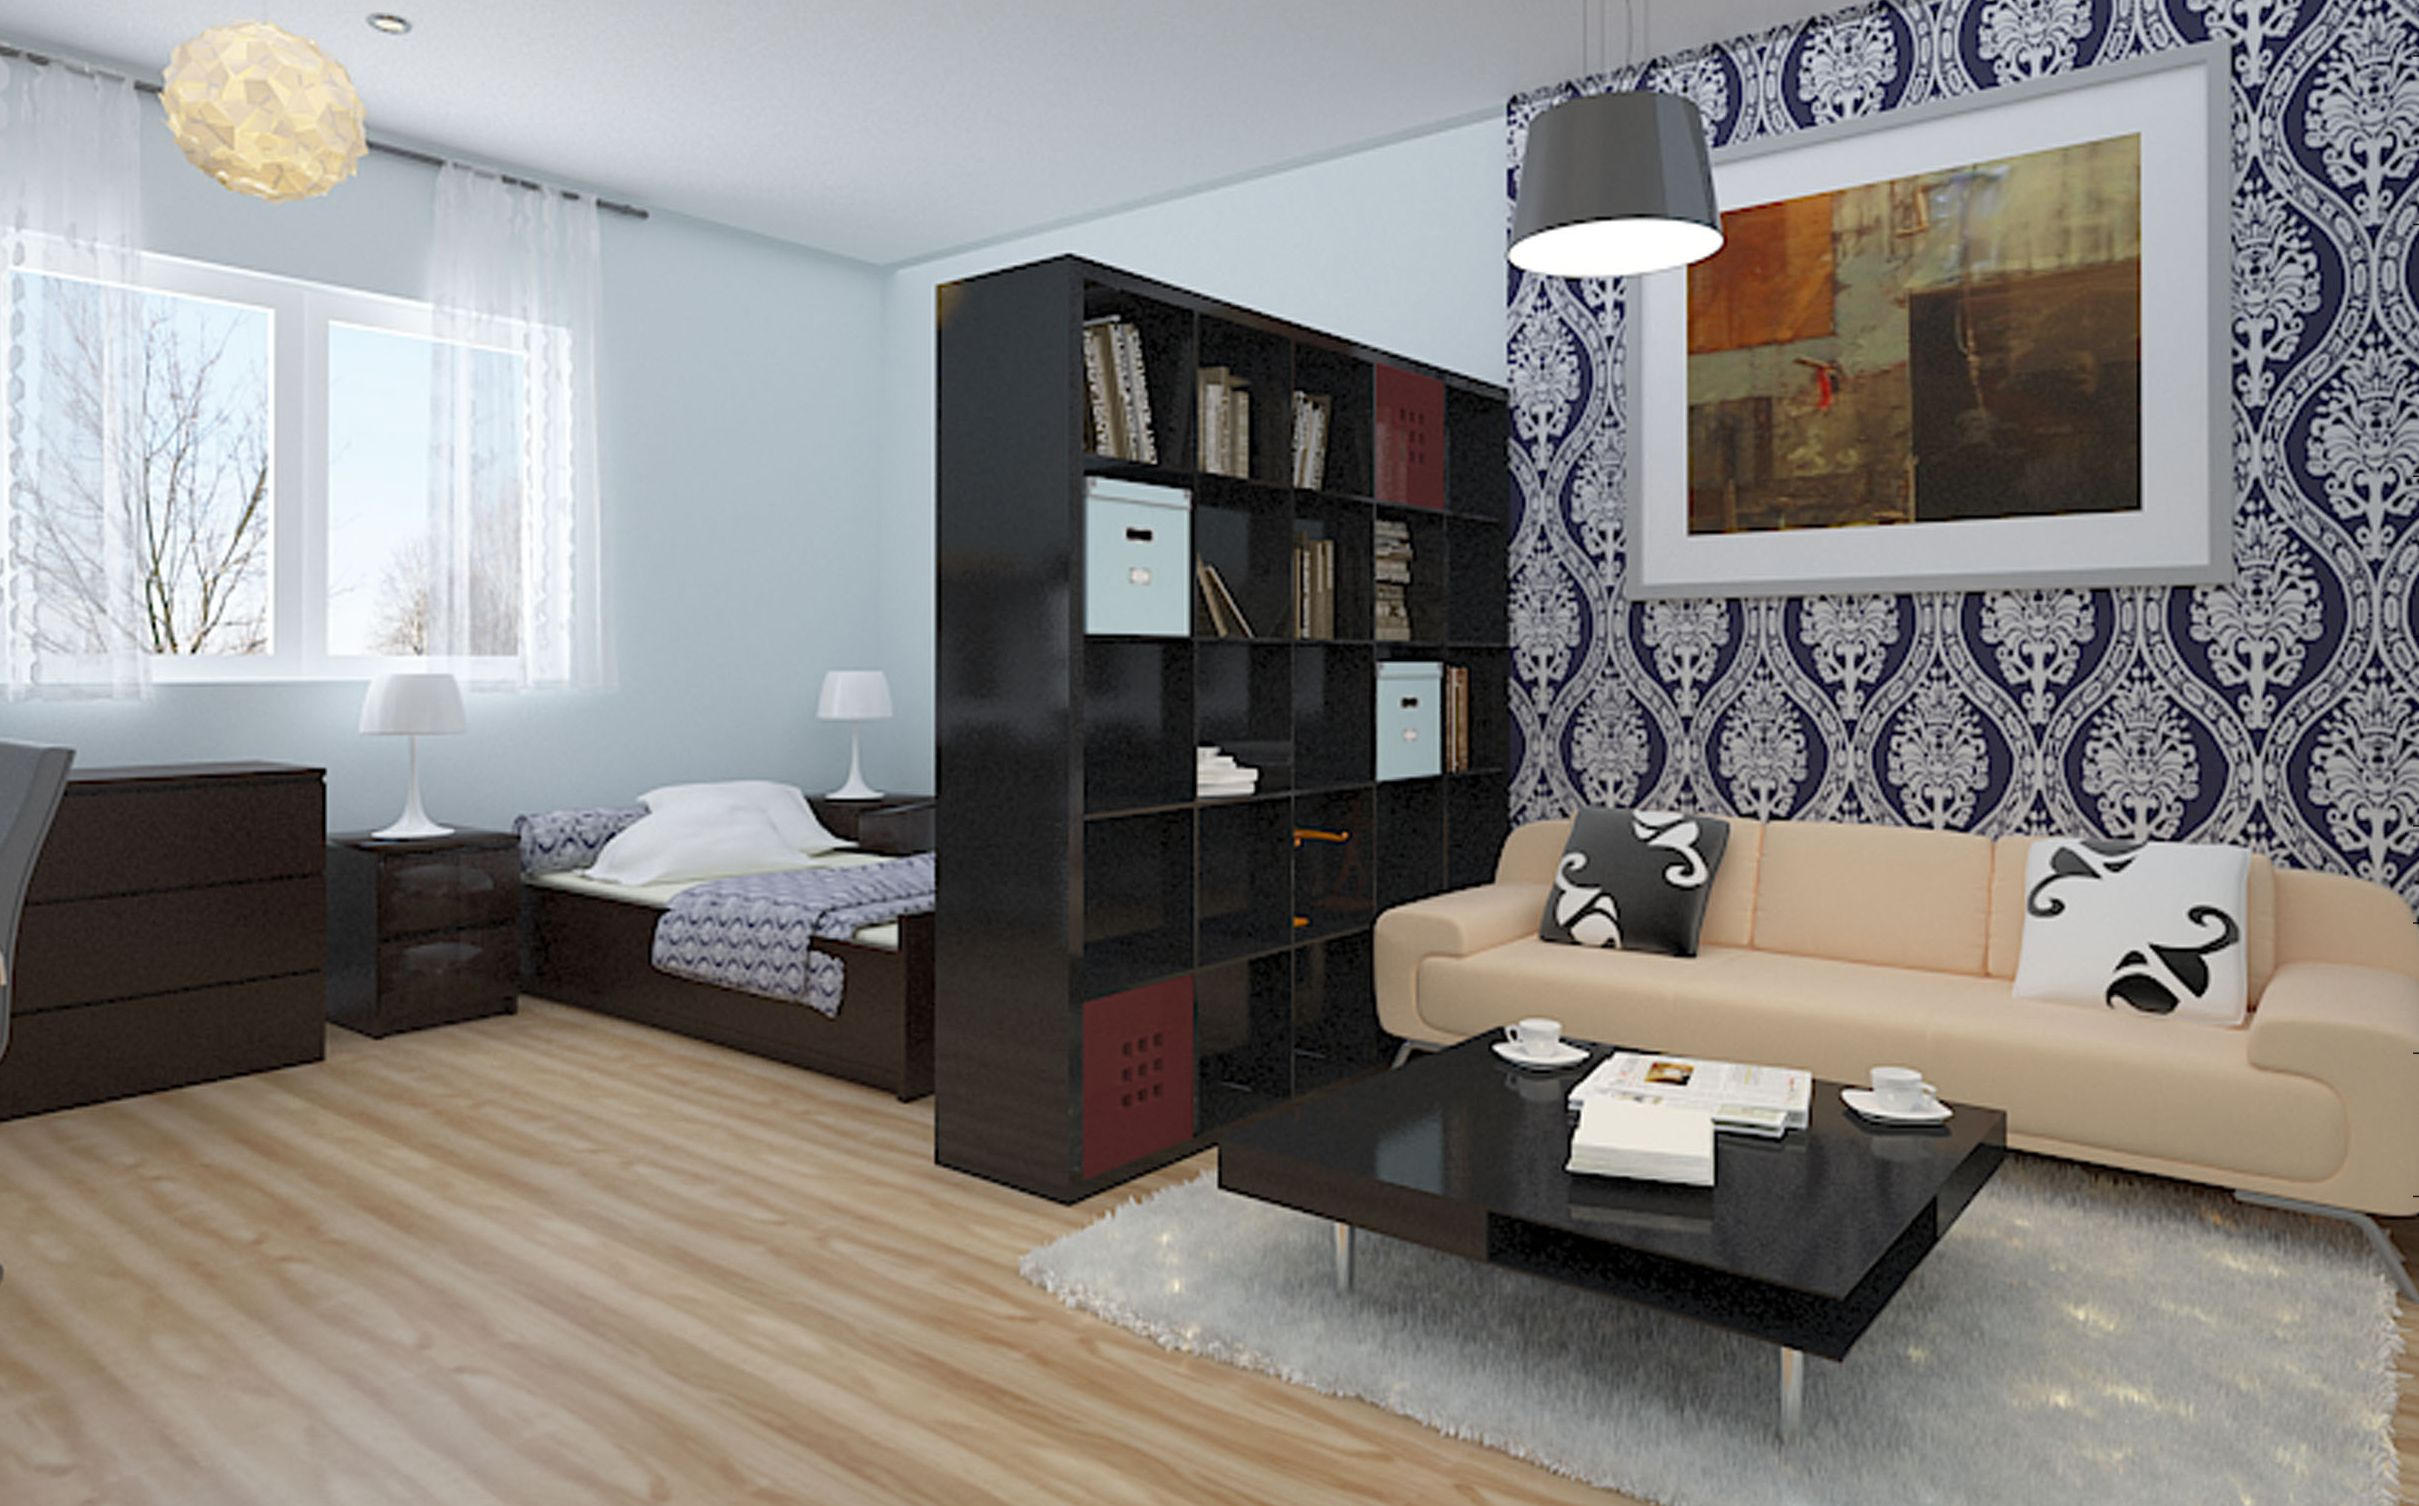 Best Studio Apartment Design Decor Image Review